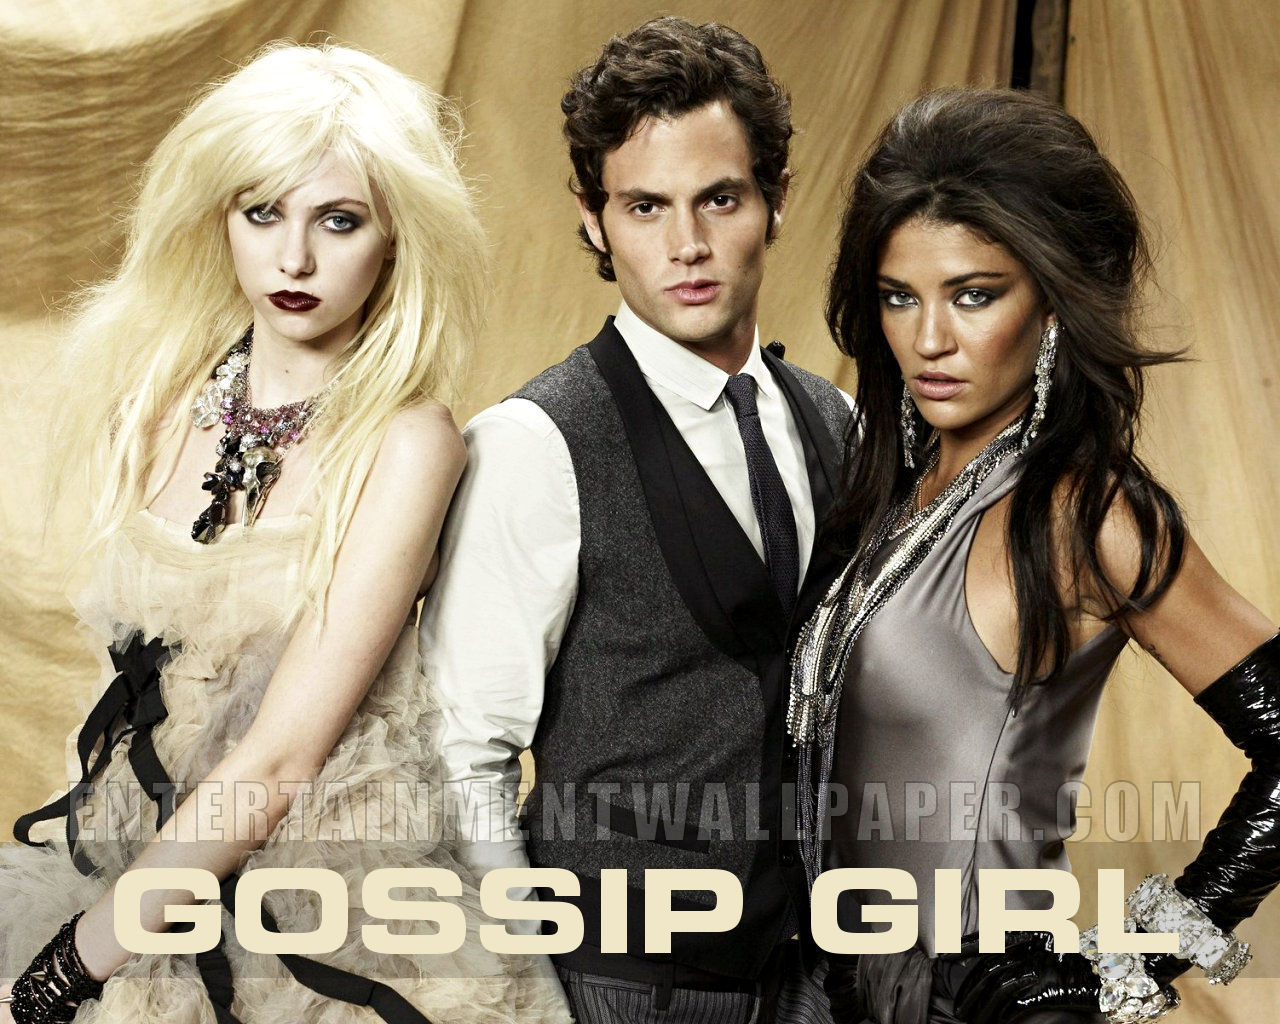 Gossip Girl - Gossip Girl Wallpaper (16115233) - Fanpop